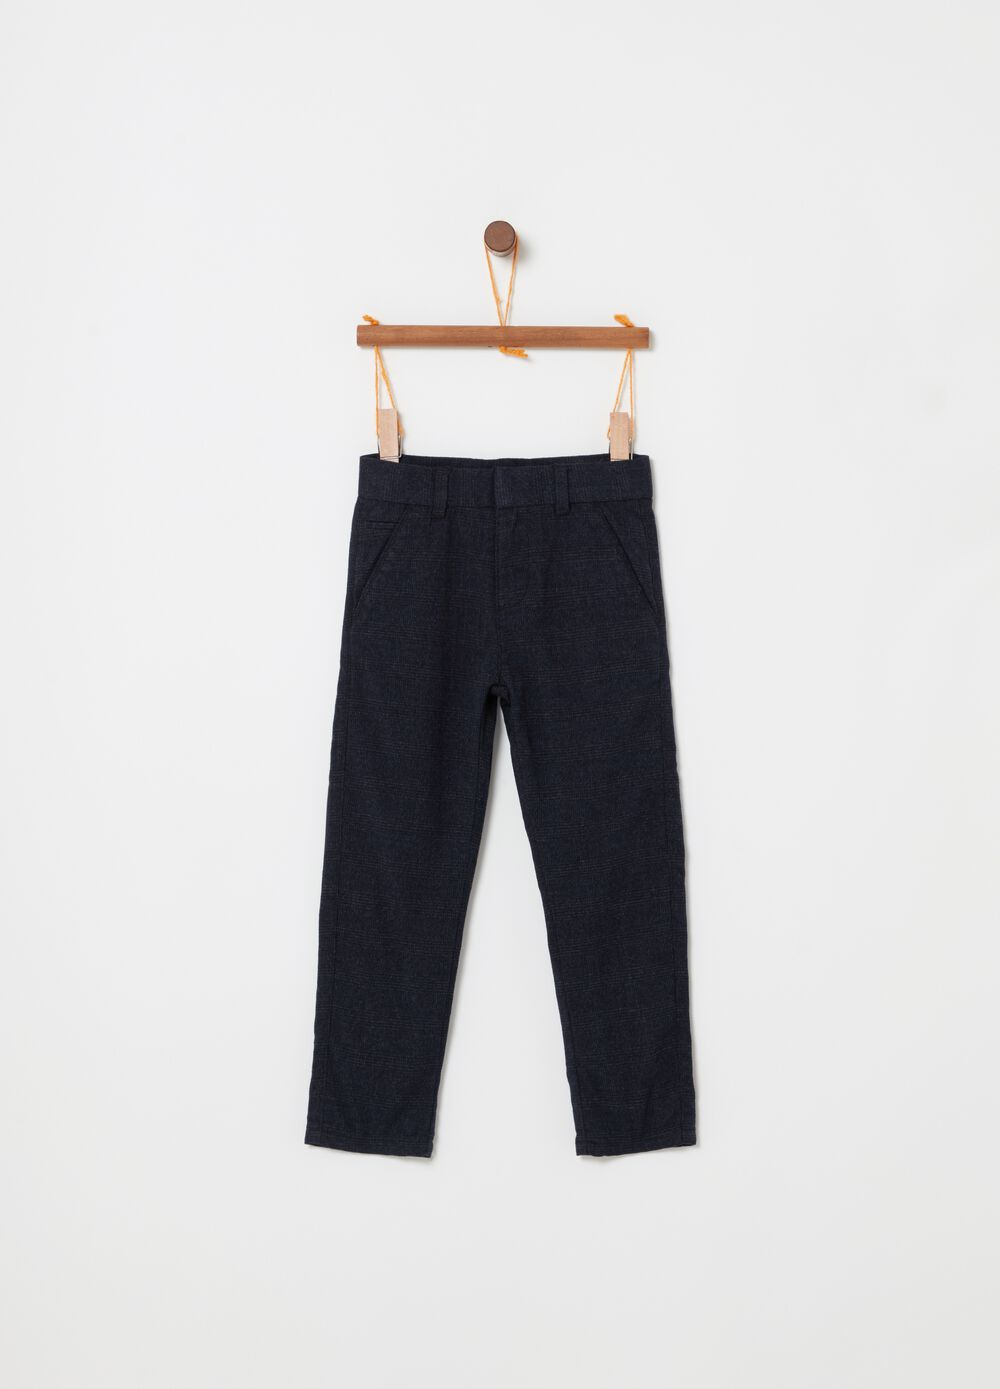 Viscose blend trousers with pockets